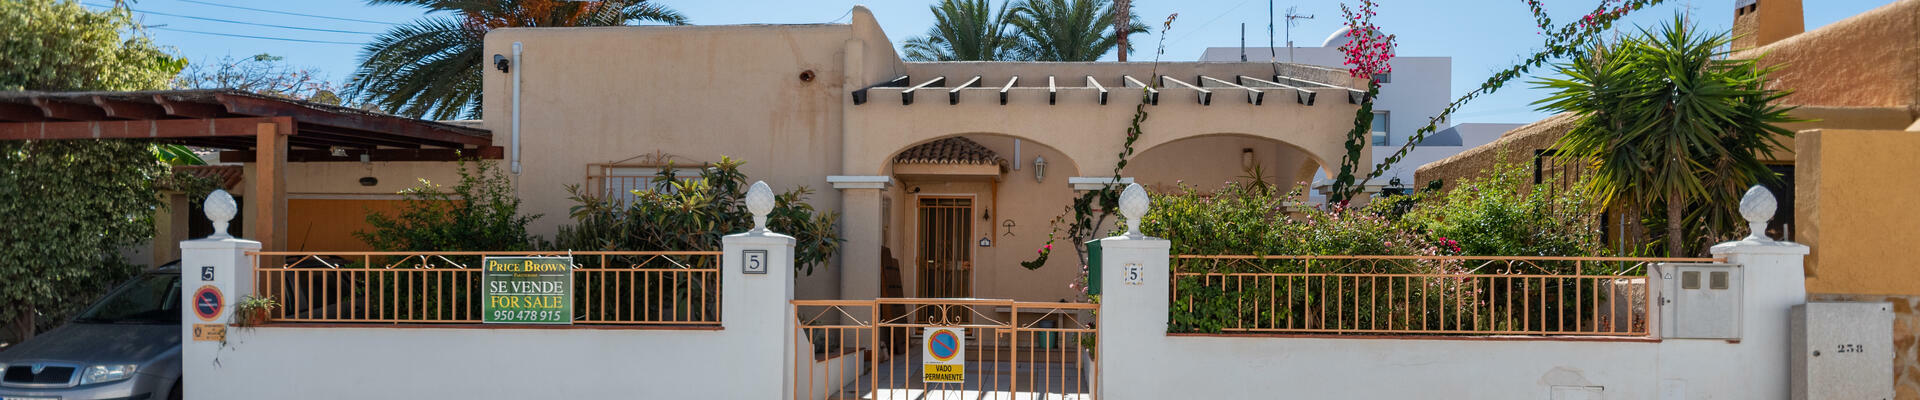 DV1508: 3 Bedroom Villa for Sale